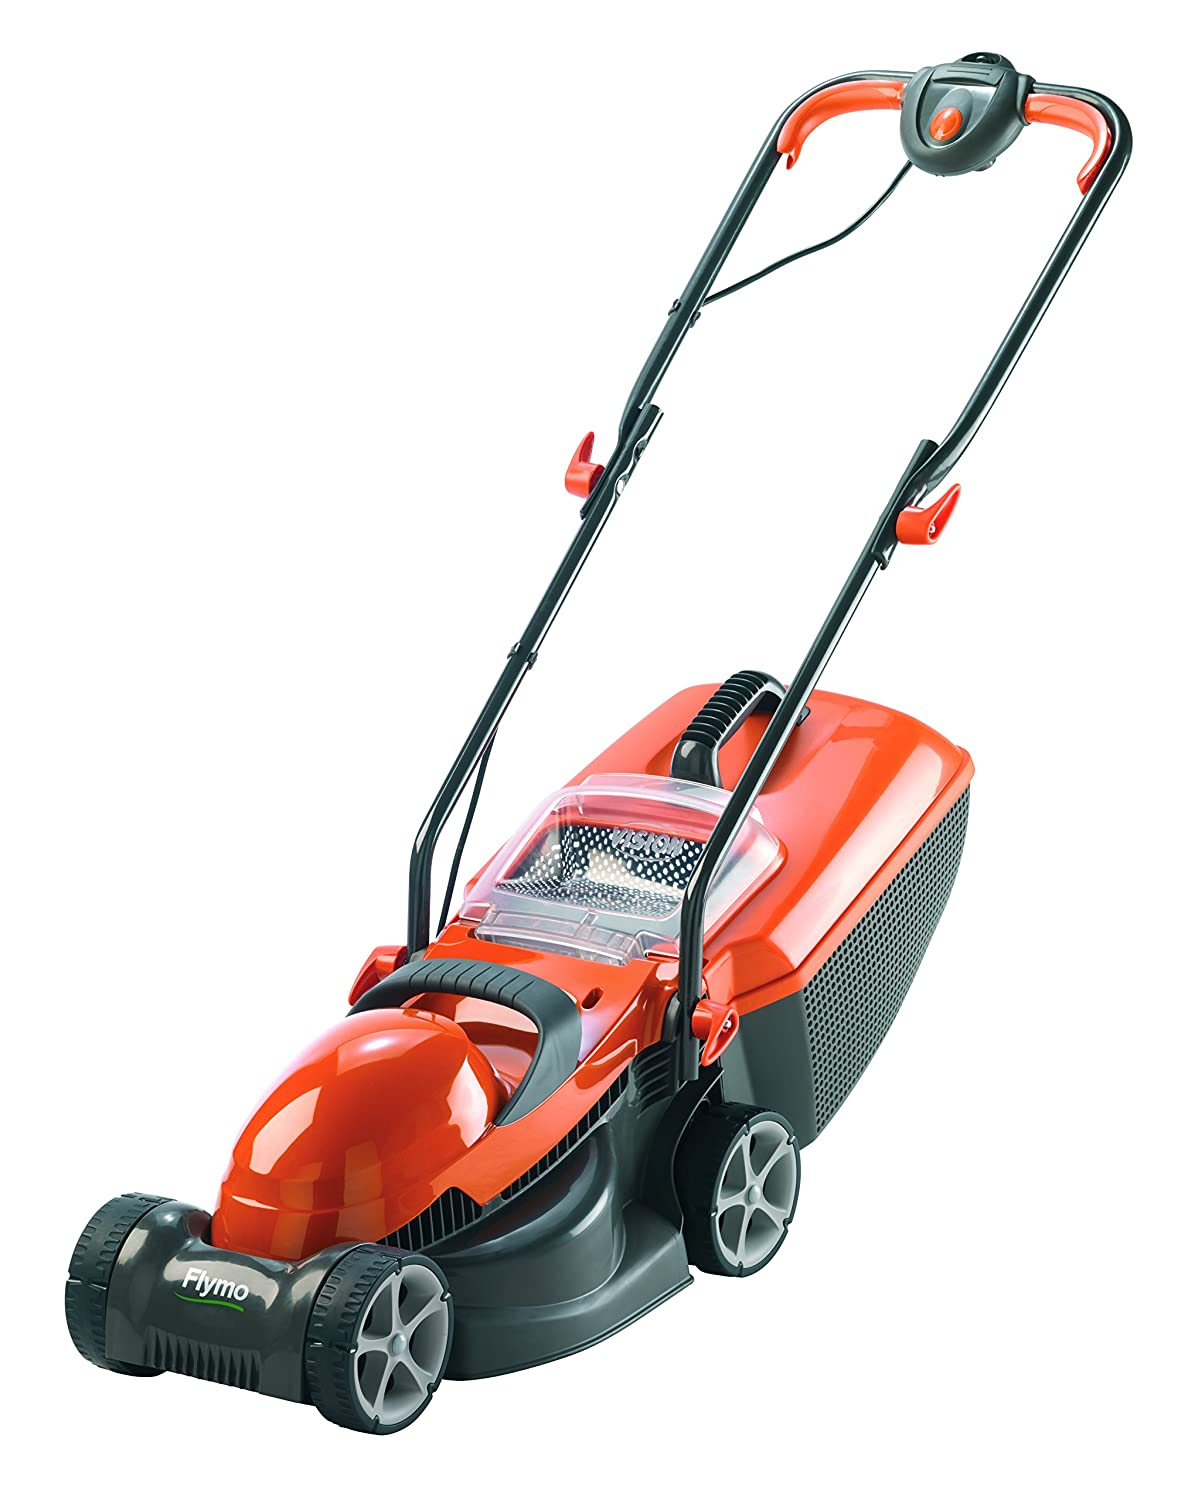 Flymo Chevron 32V Electric Wheeled Lawn Mower, 1200 W, Cutting Width 32 cm 9666084-01